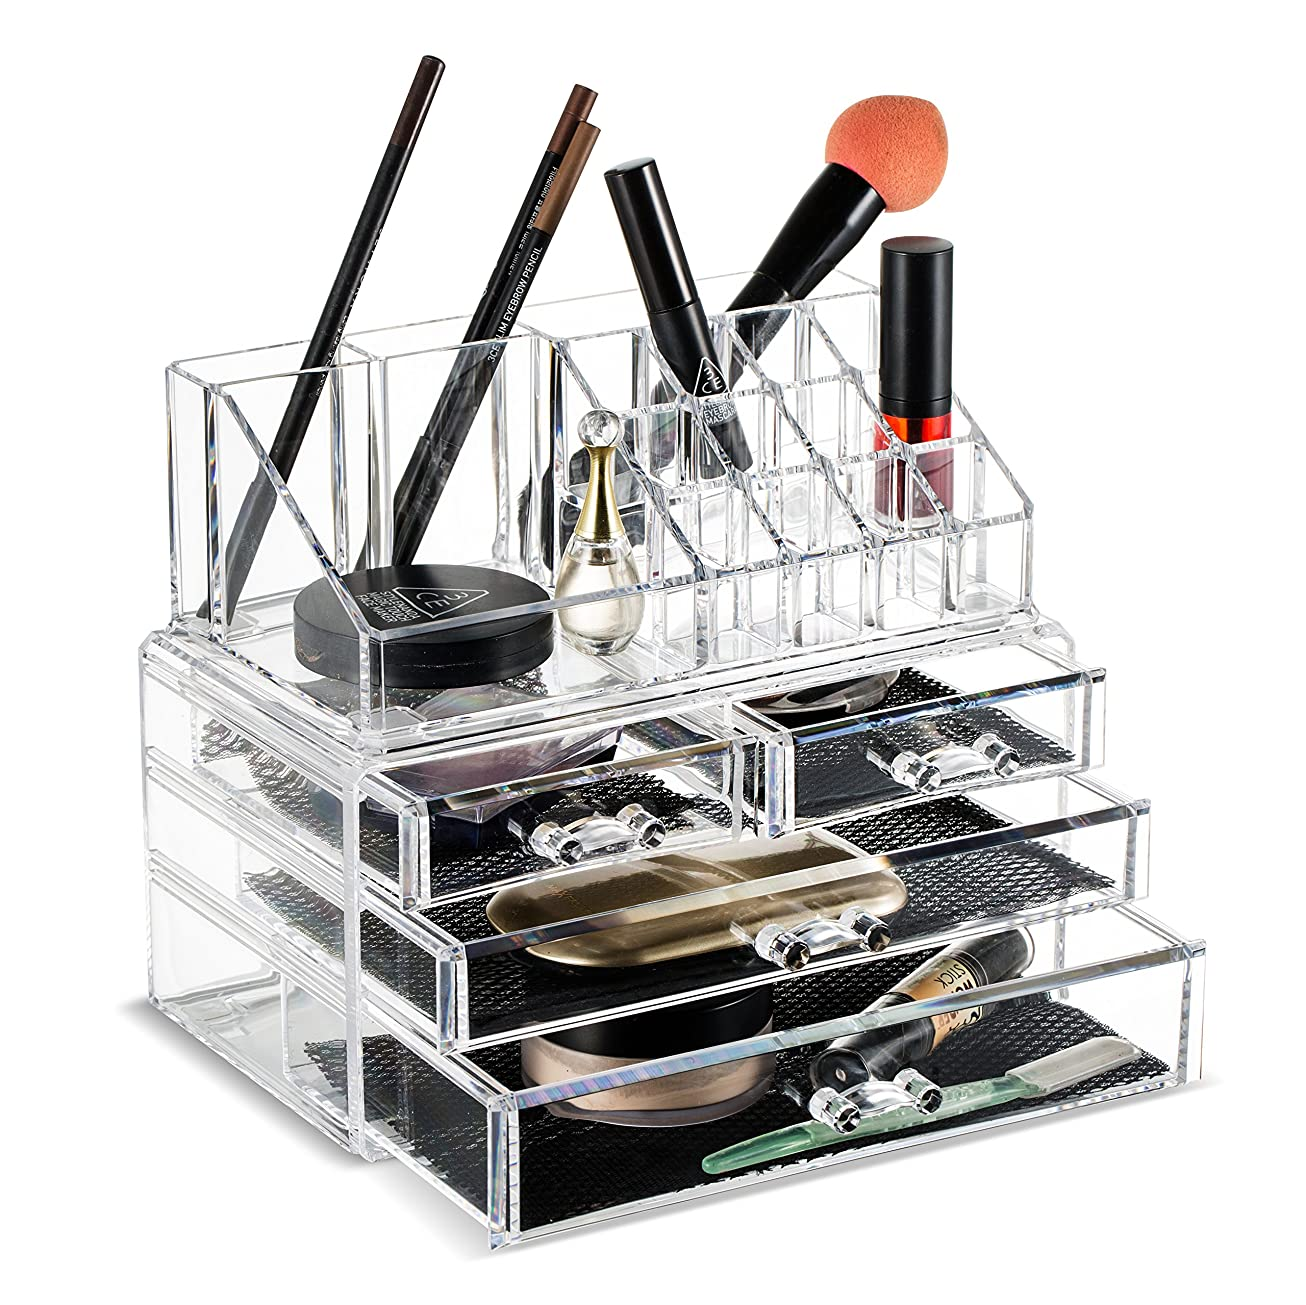 民兵重大アサー(2 Pieces Set) - Felicite Home Makeup Cosmetic Organiser Conceal/Lipstick/Eyeshadow/Brushes in One place Storage Drawers, Clear, Medium,NEWEST EDITION UPGRADED BOTTOM DRAWER SIZE, 2 Piece Set